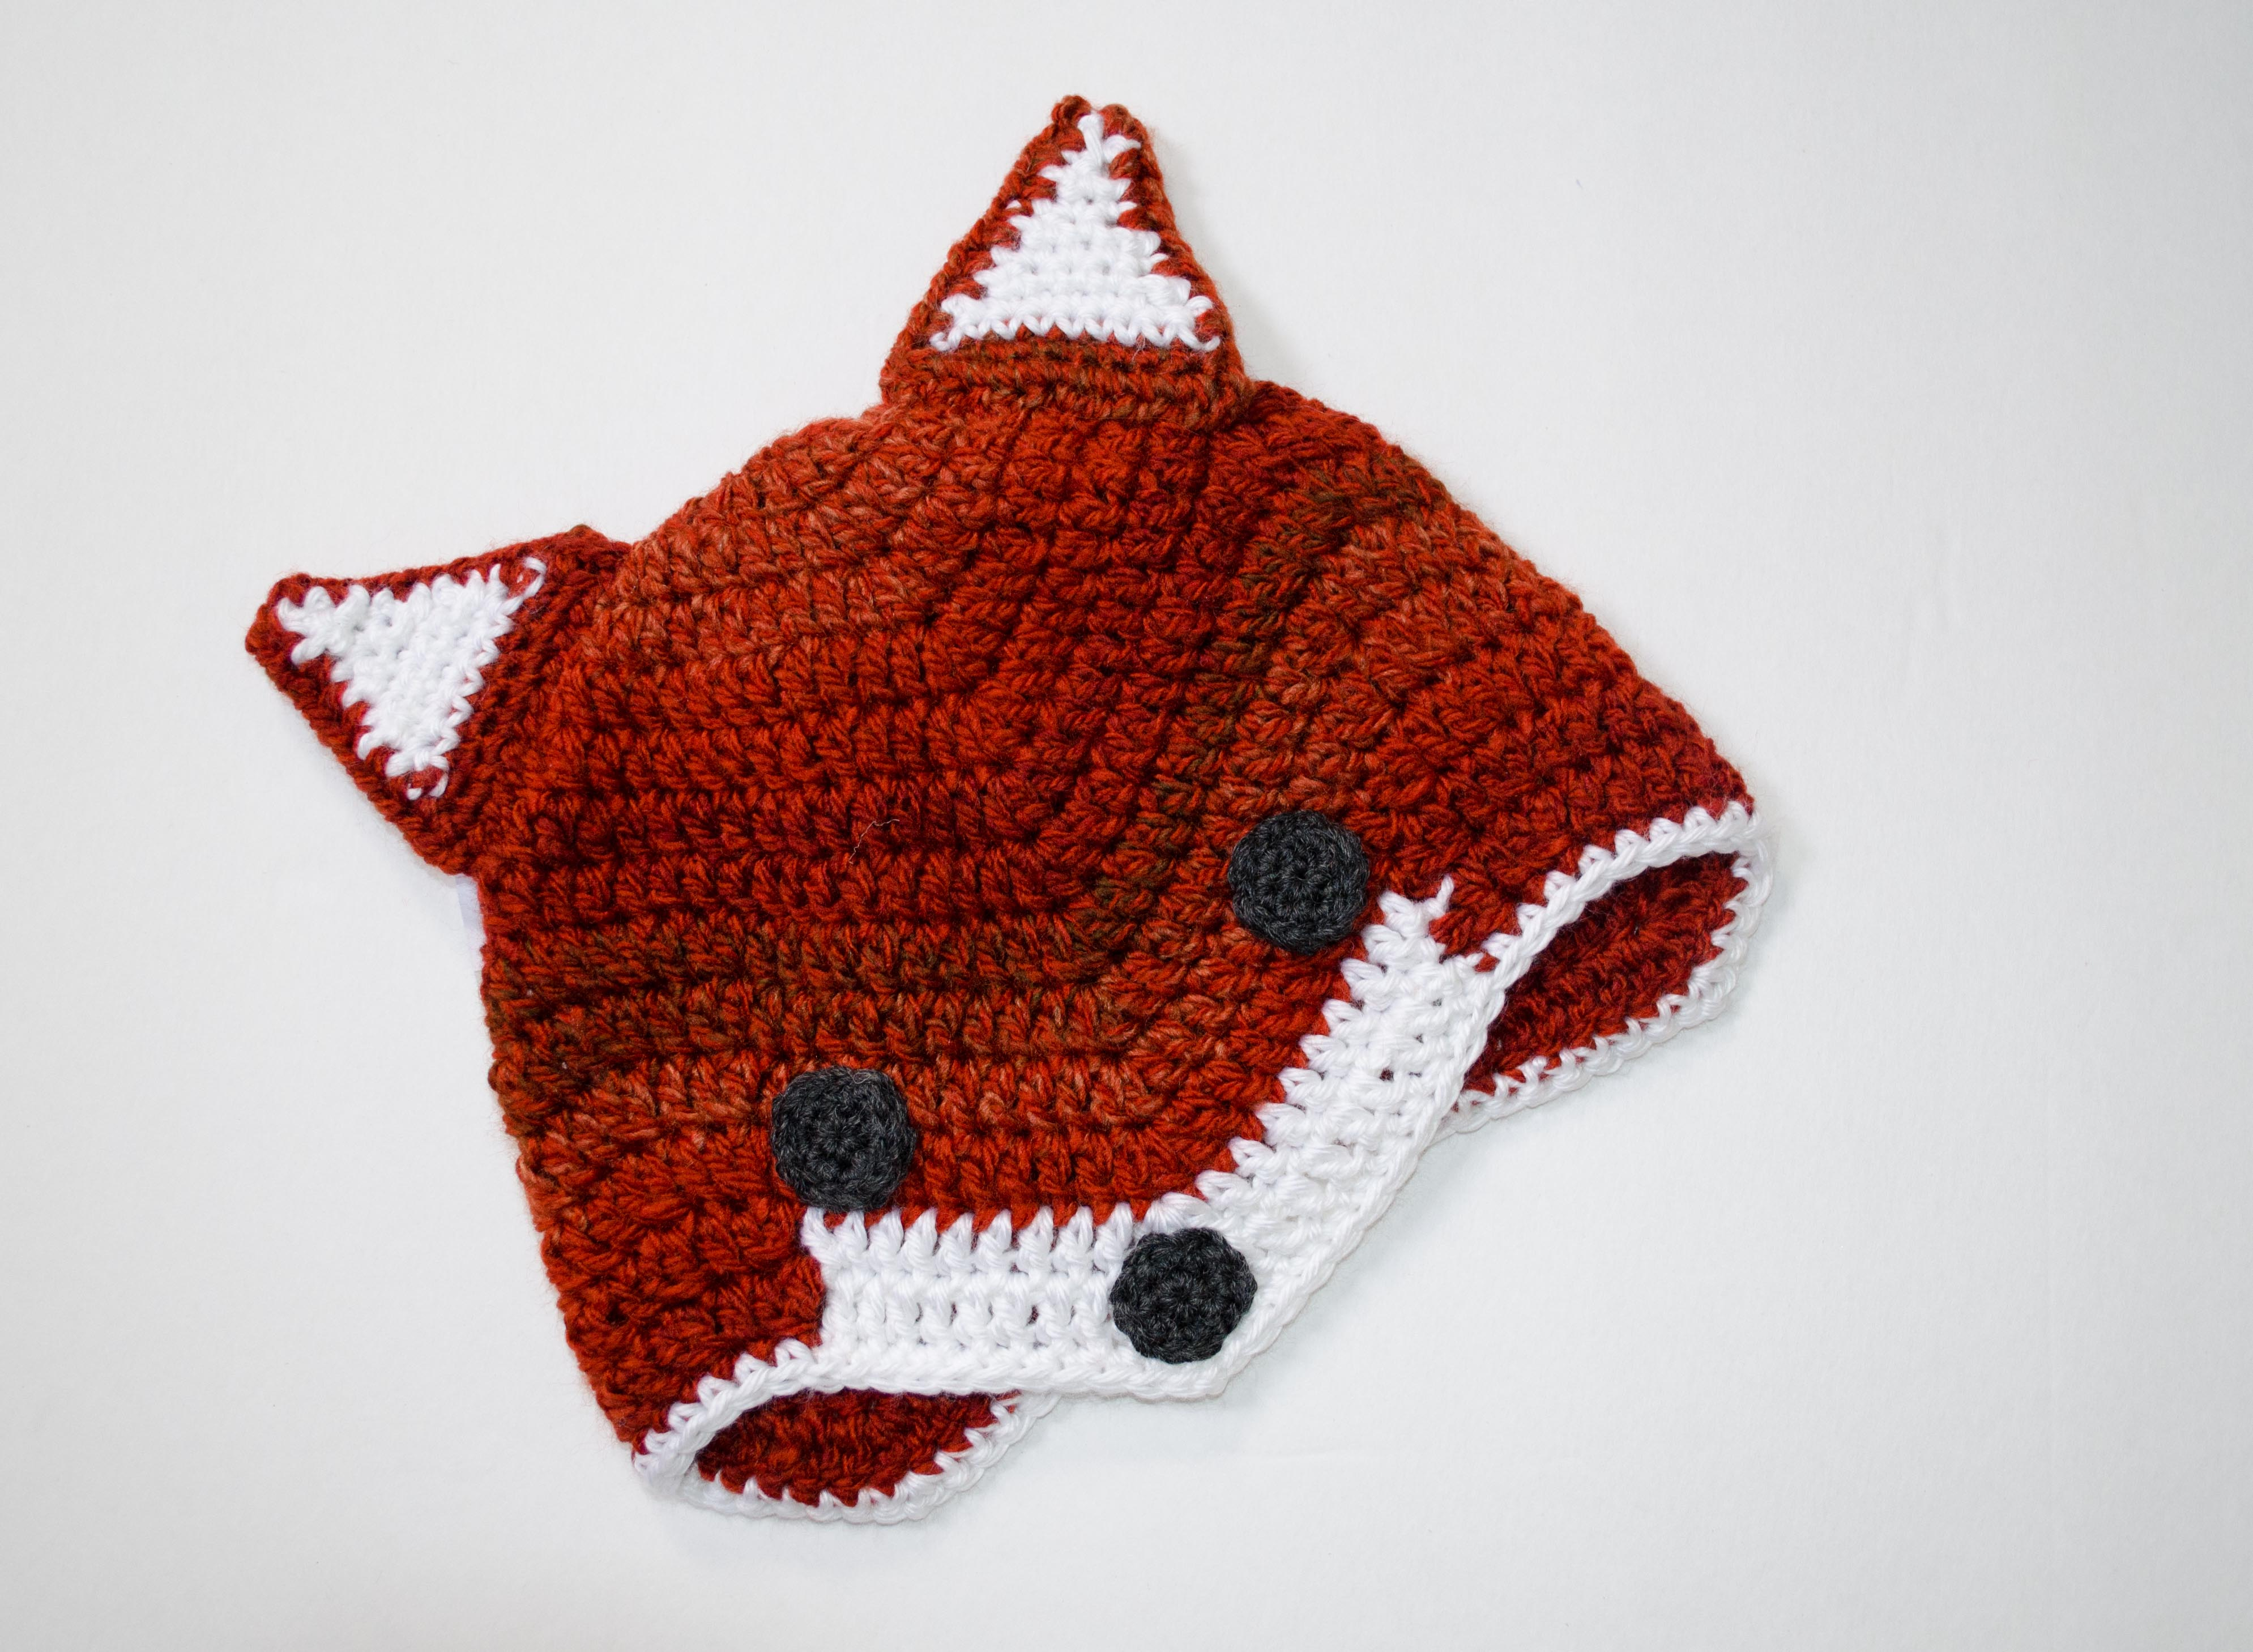 http://jaimeddesigns.storenvy.com/products/4210712-sly-fox-hat